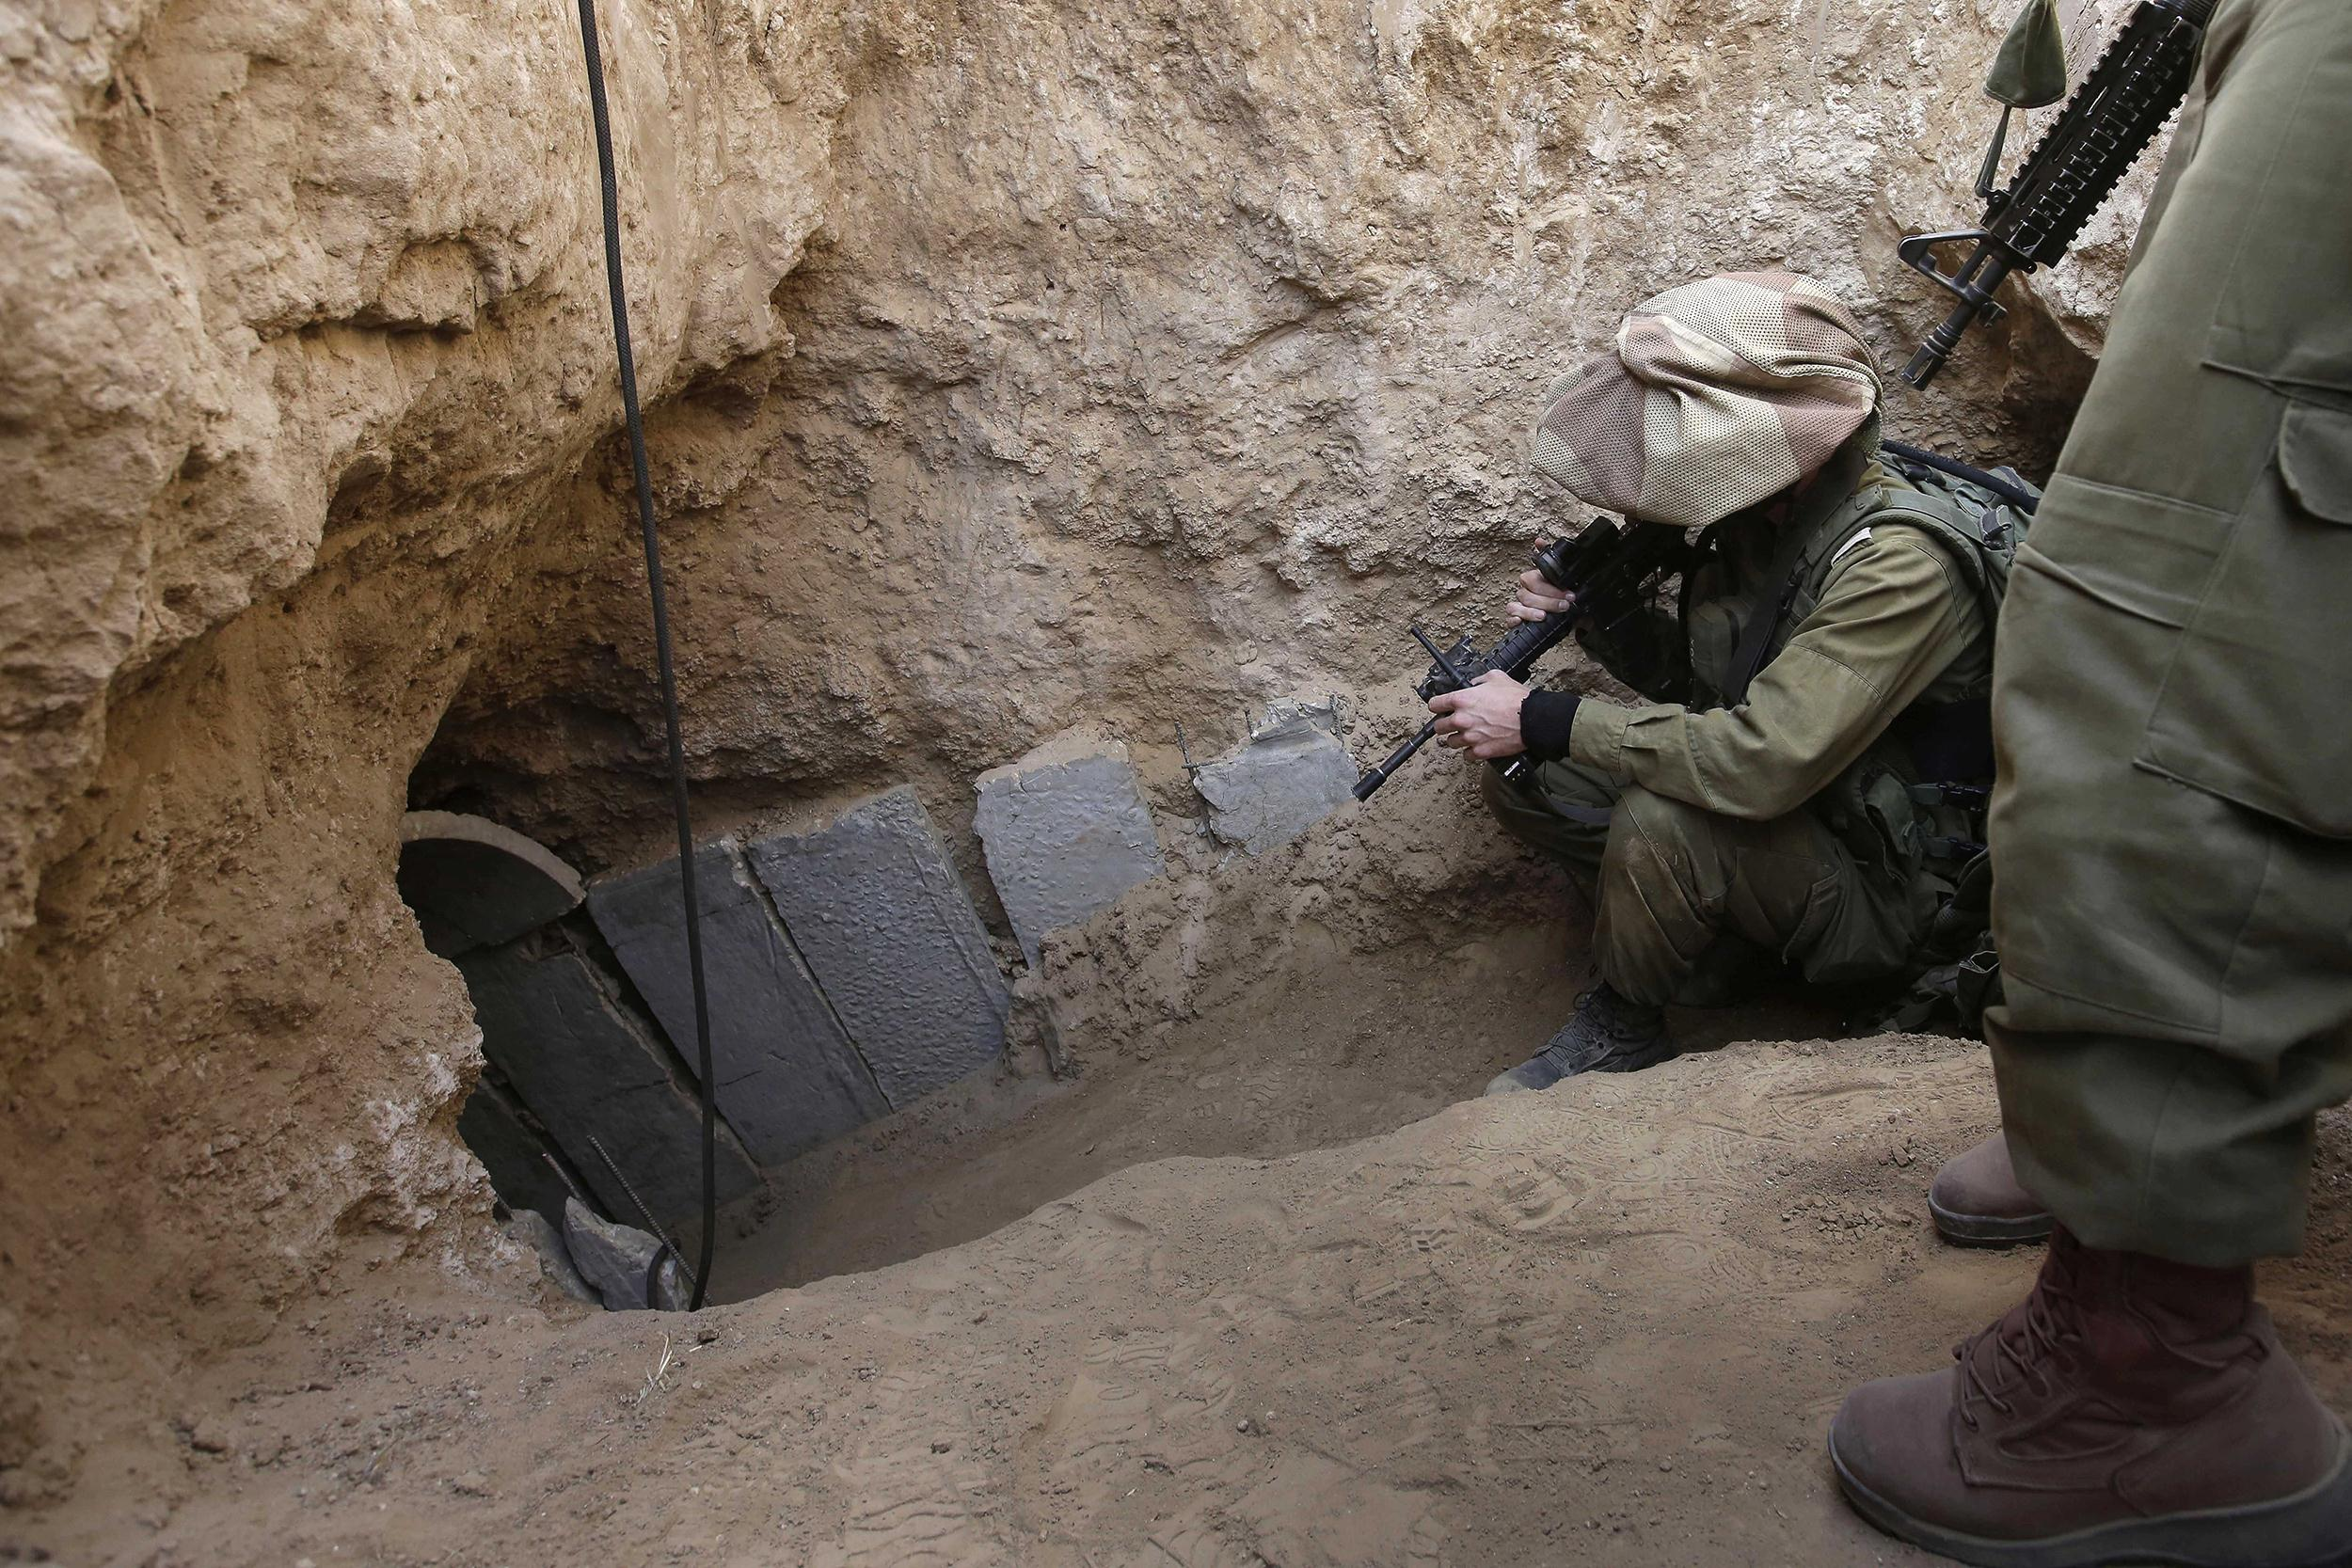 Image: Israeli soldiers enter a tunnel discovered near the Israel Gaza border on Oct. 13, 2013.